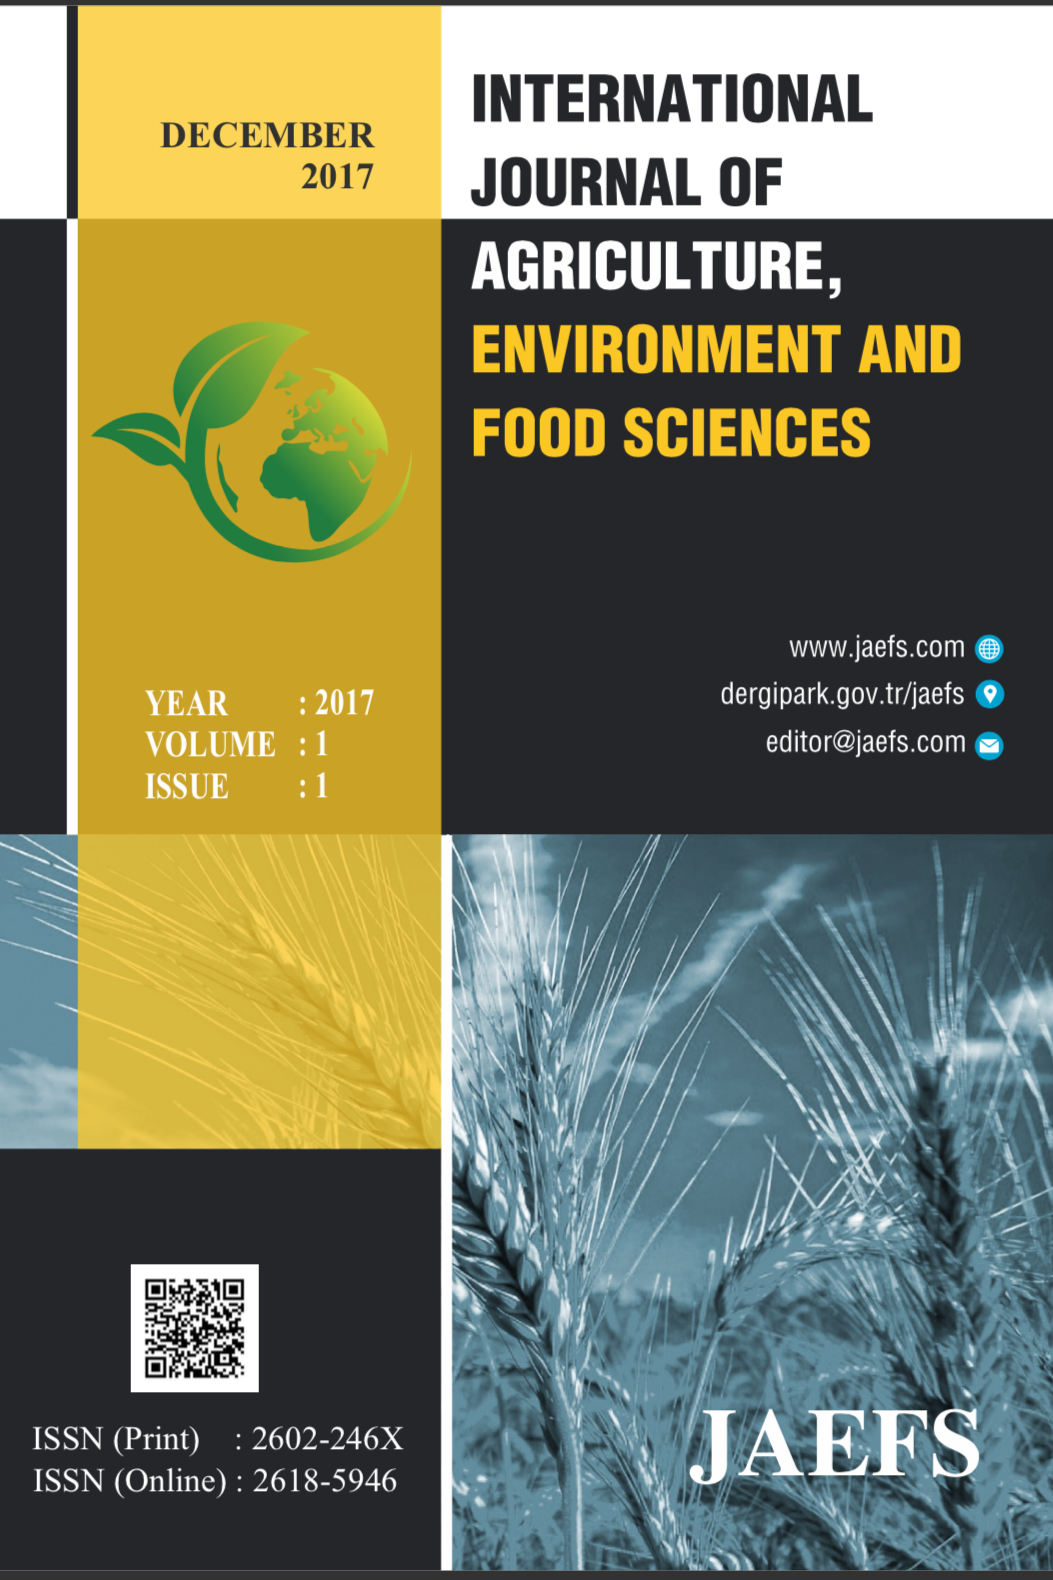 International Journal of Agriculture Environment and Food Sciences